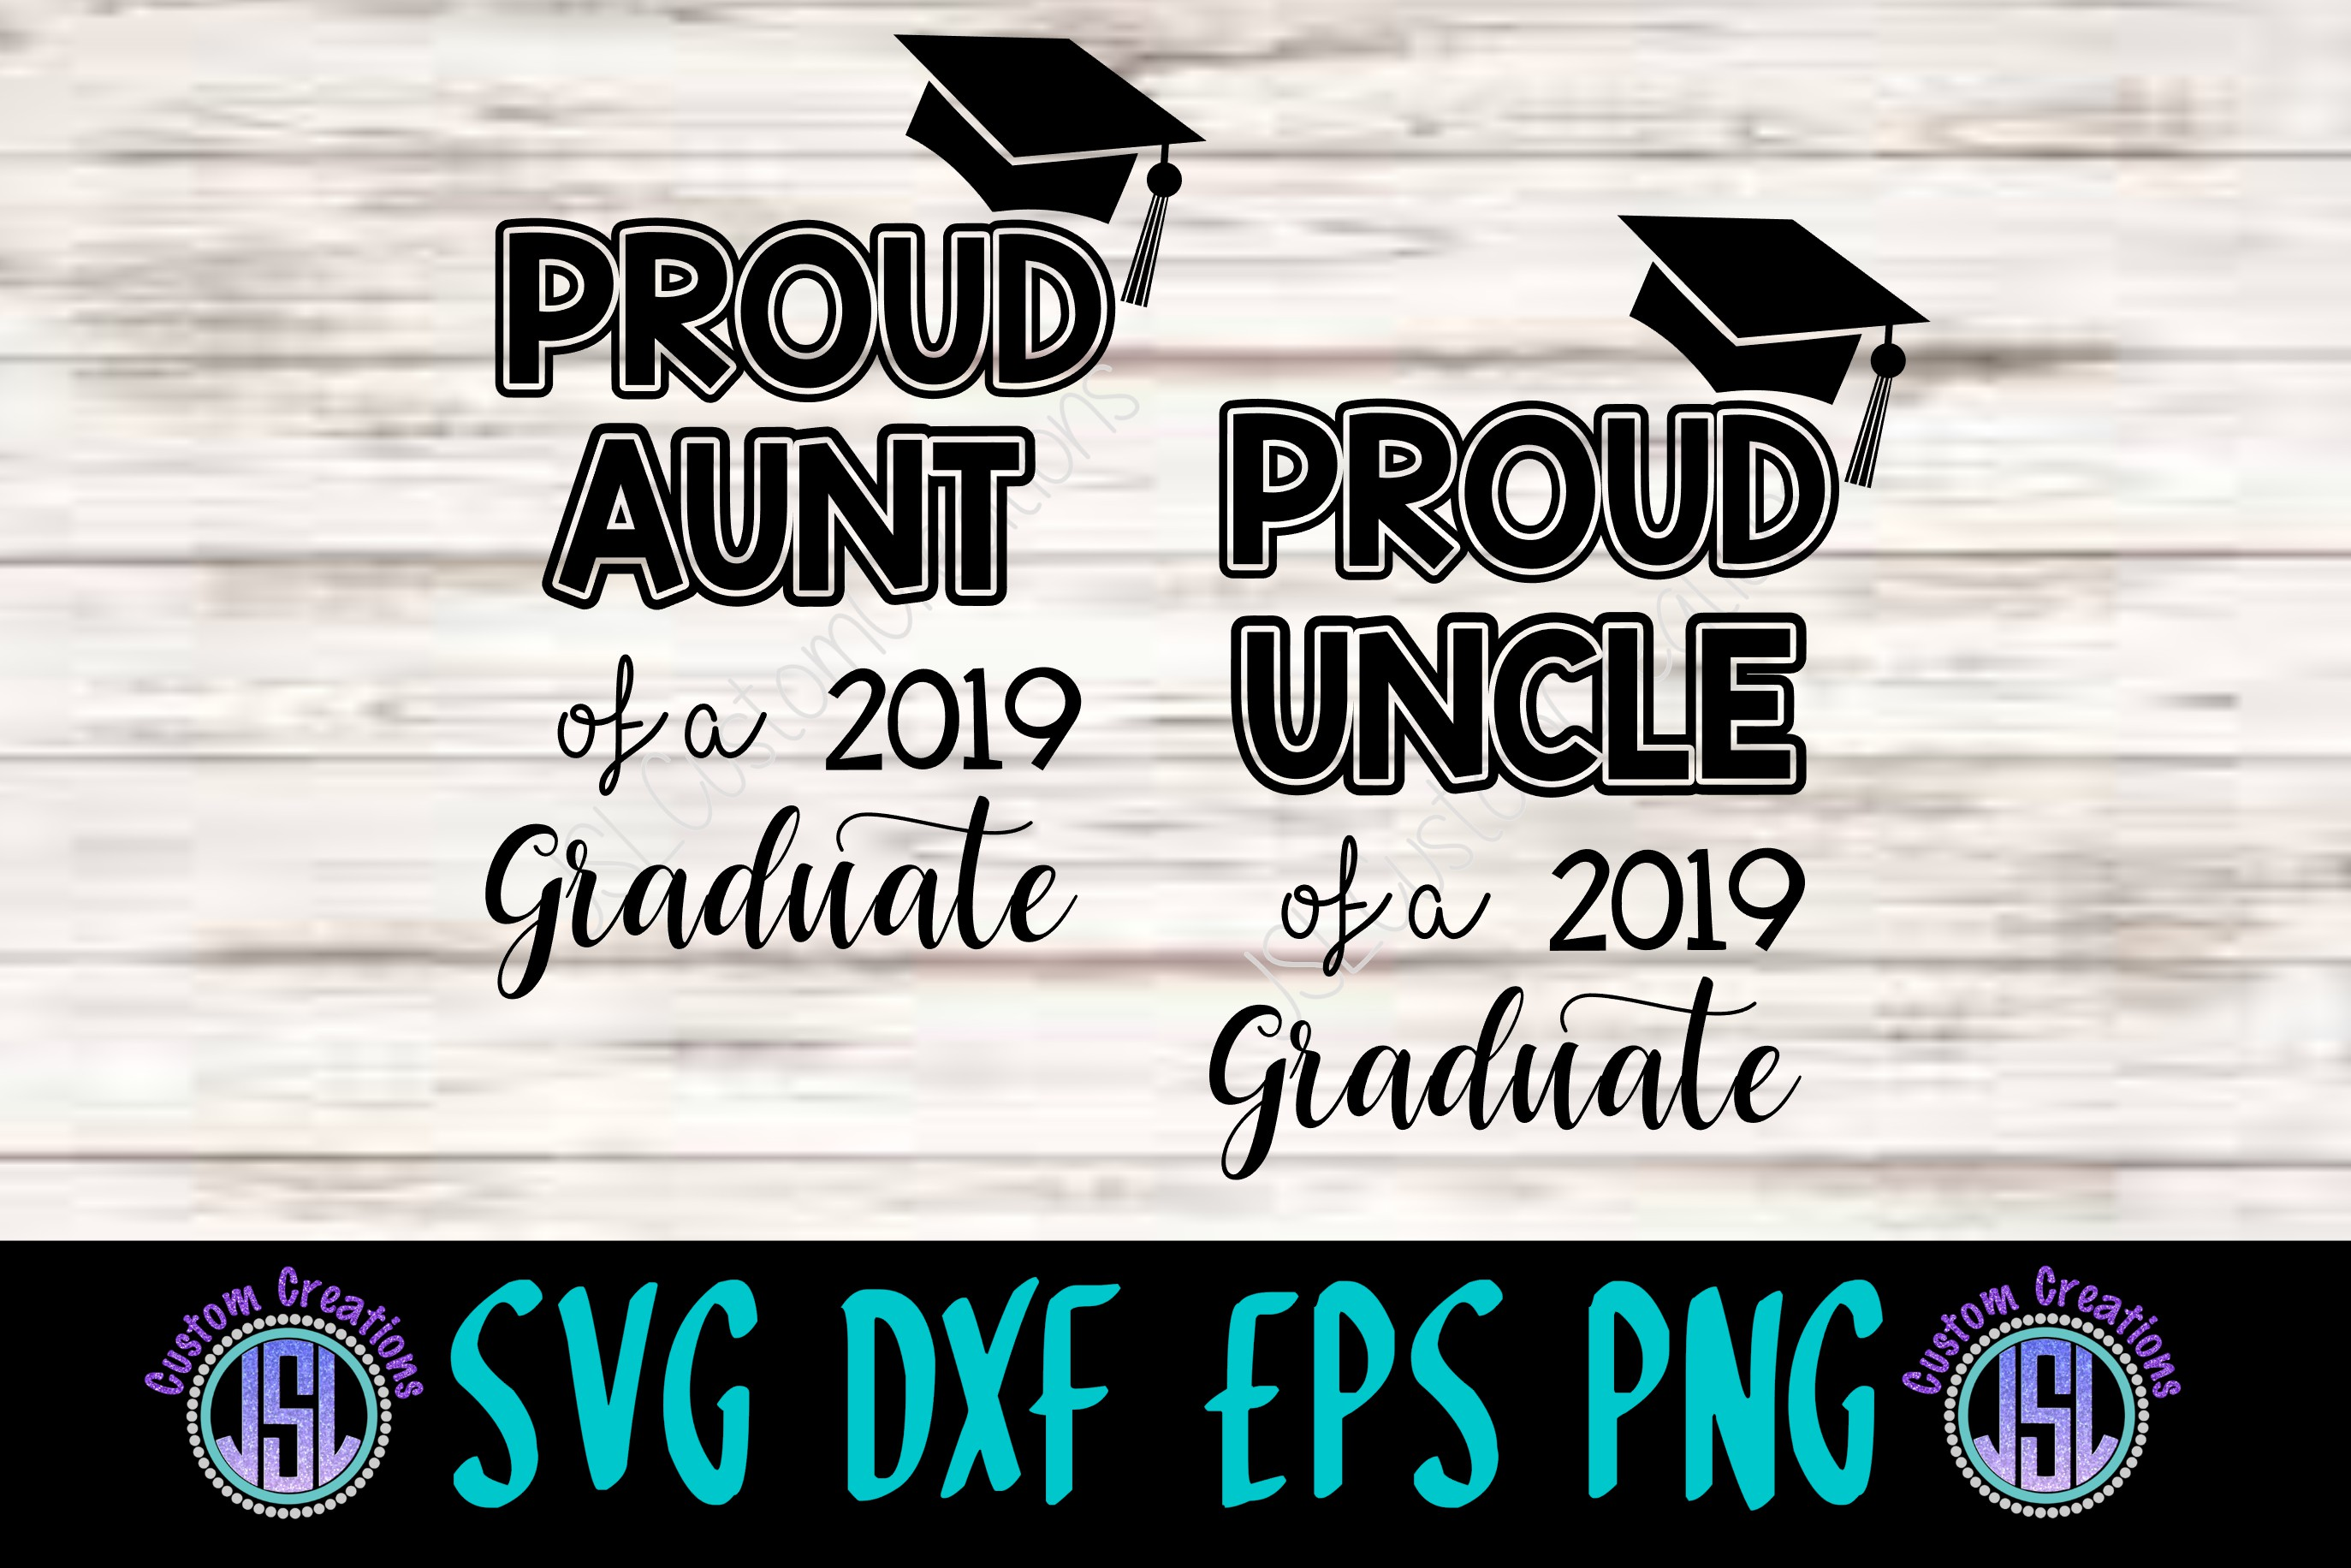 Proud Aunt, Uncle of a 2019 Graduate | SVG DXF EPS PNG Files example image 1